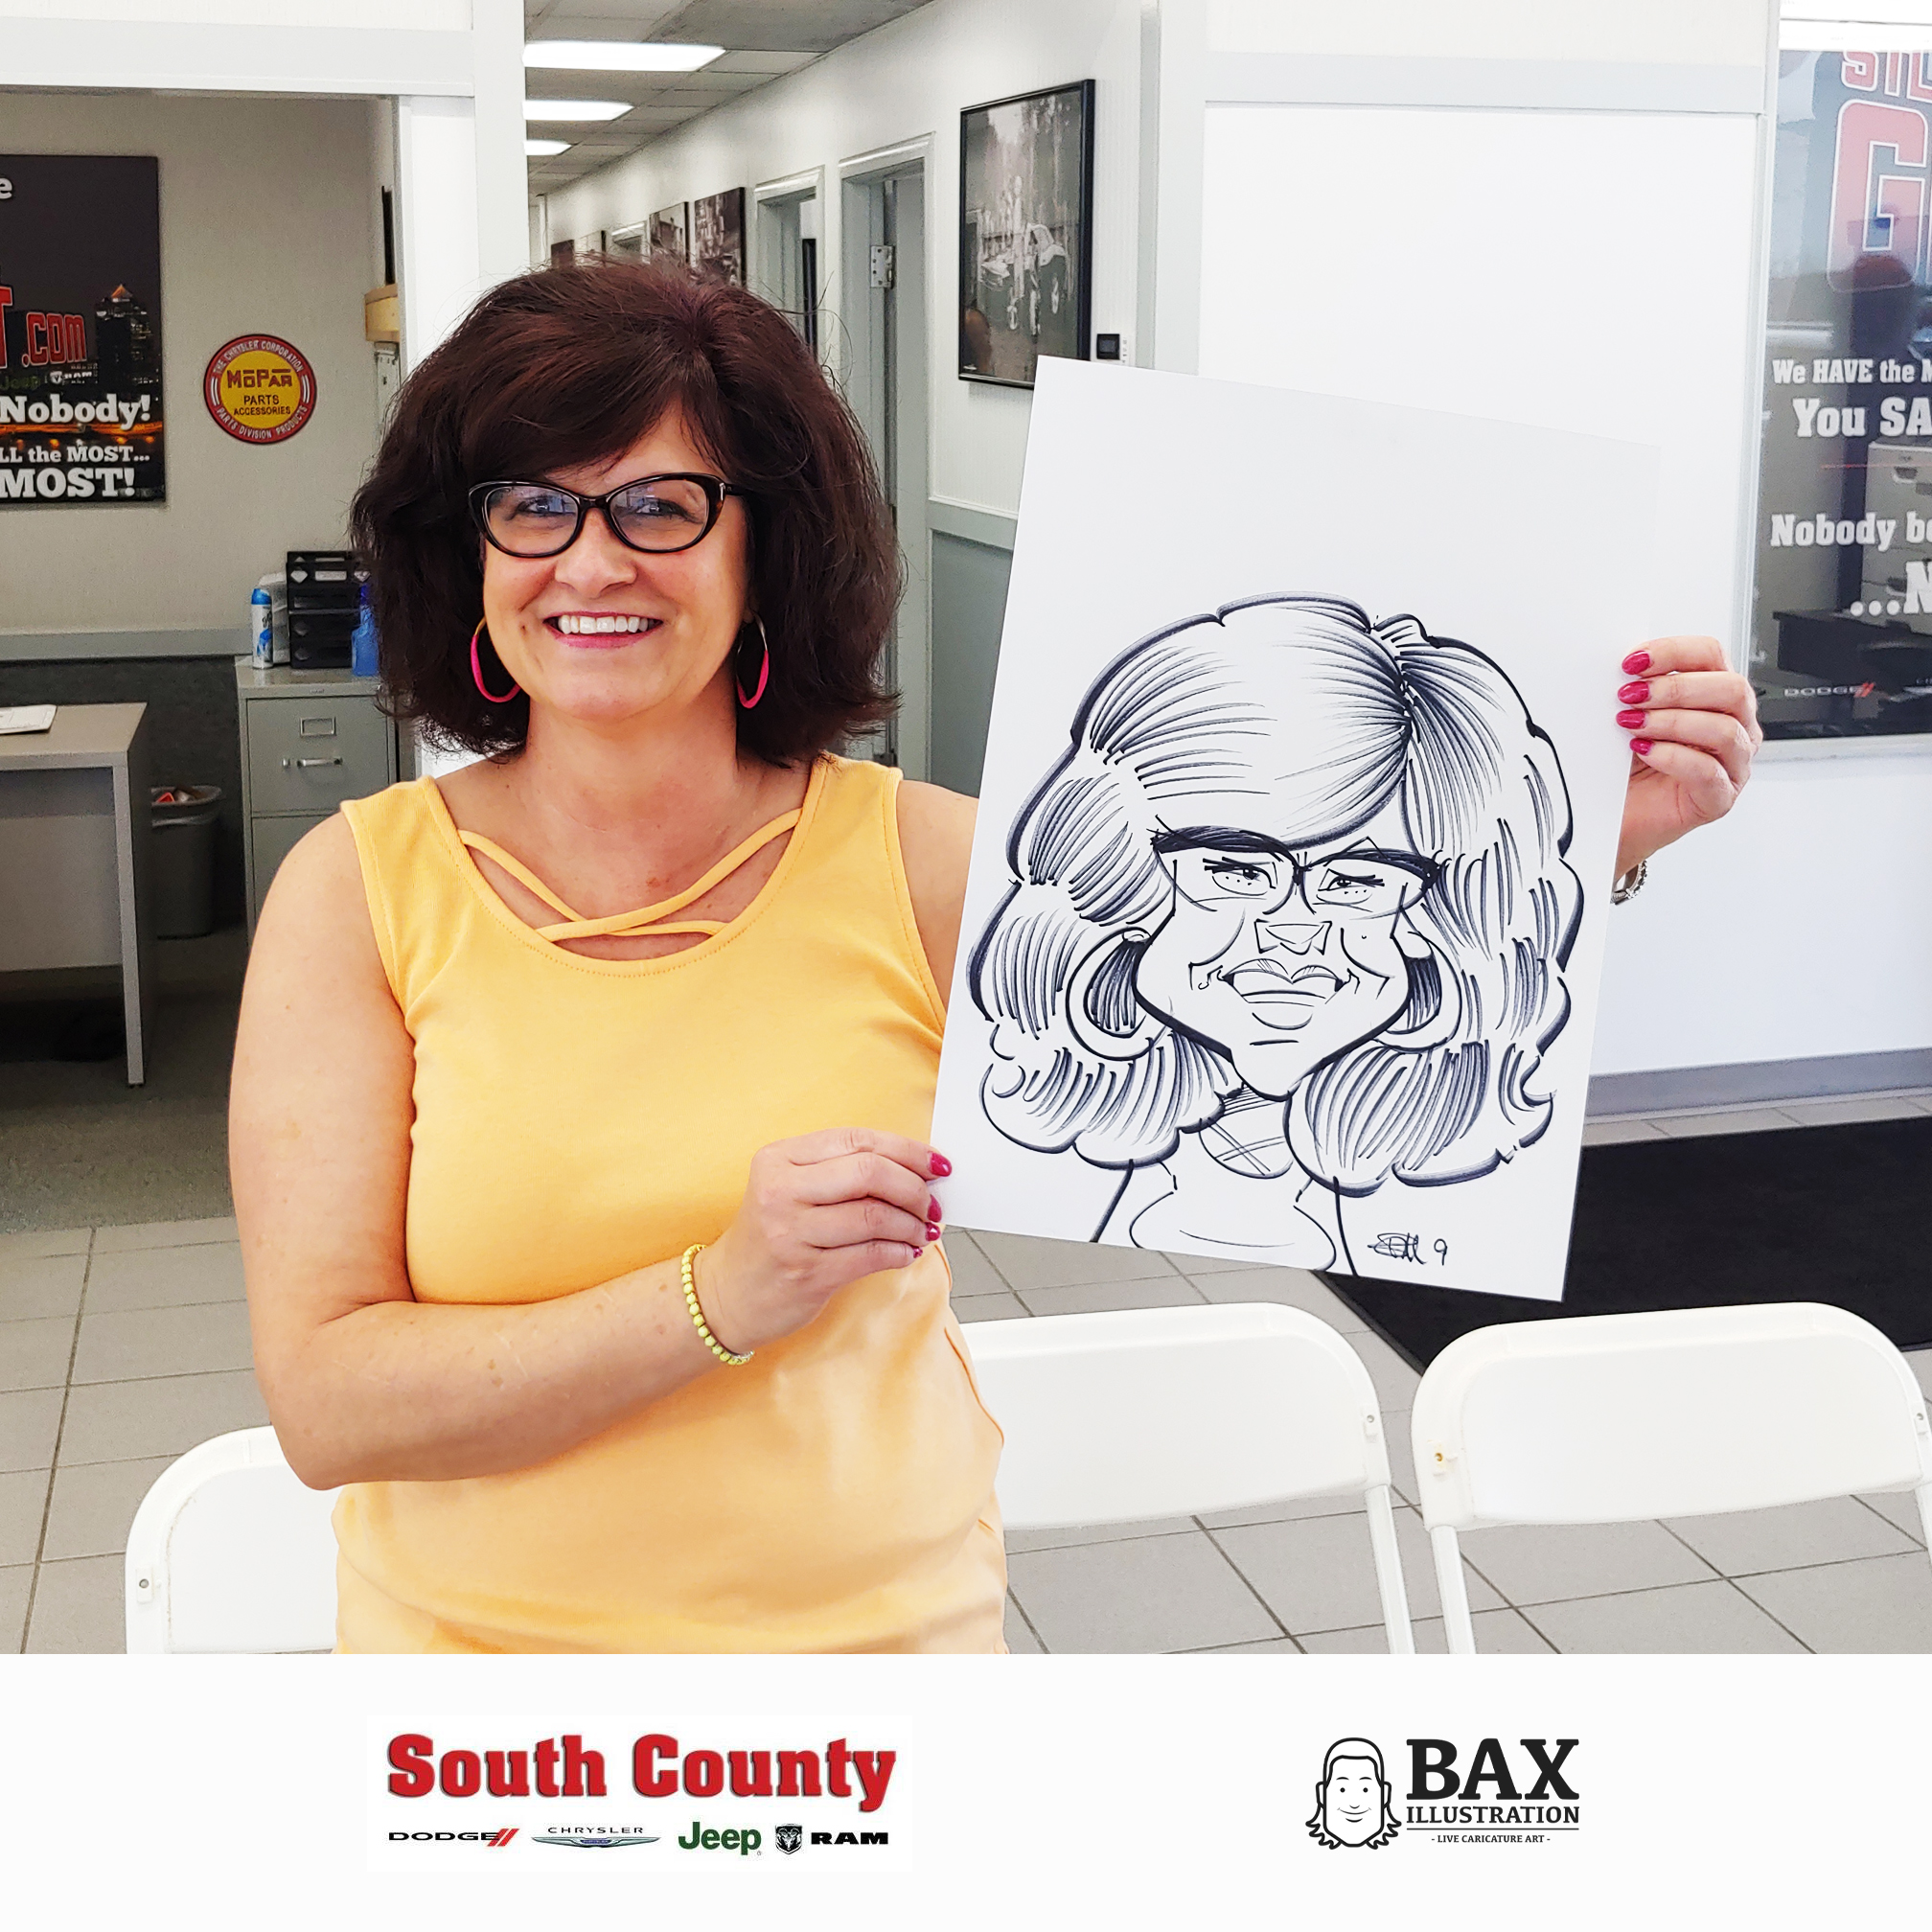 Woman holding caricature by Bax Illustration at South County Dodge Customer Appreciation Event in St. Louis